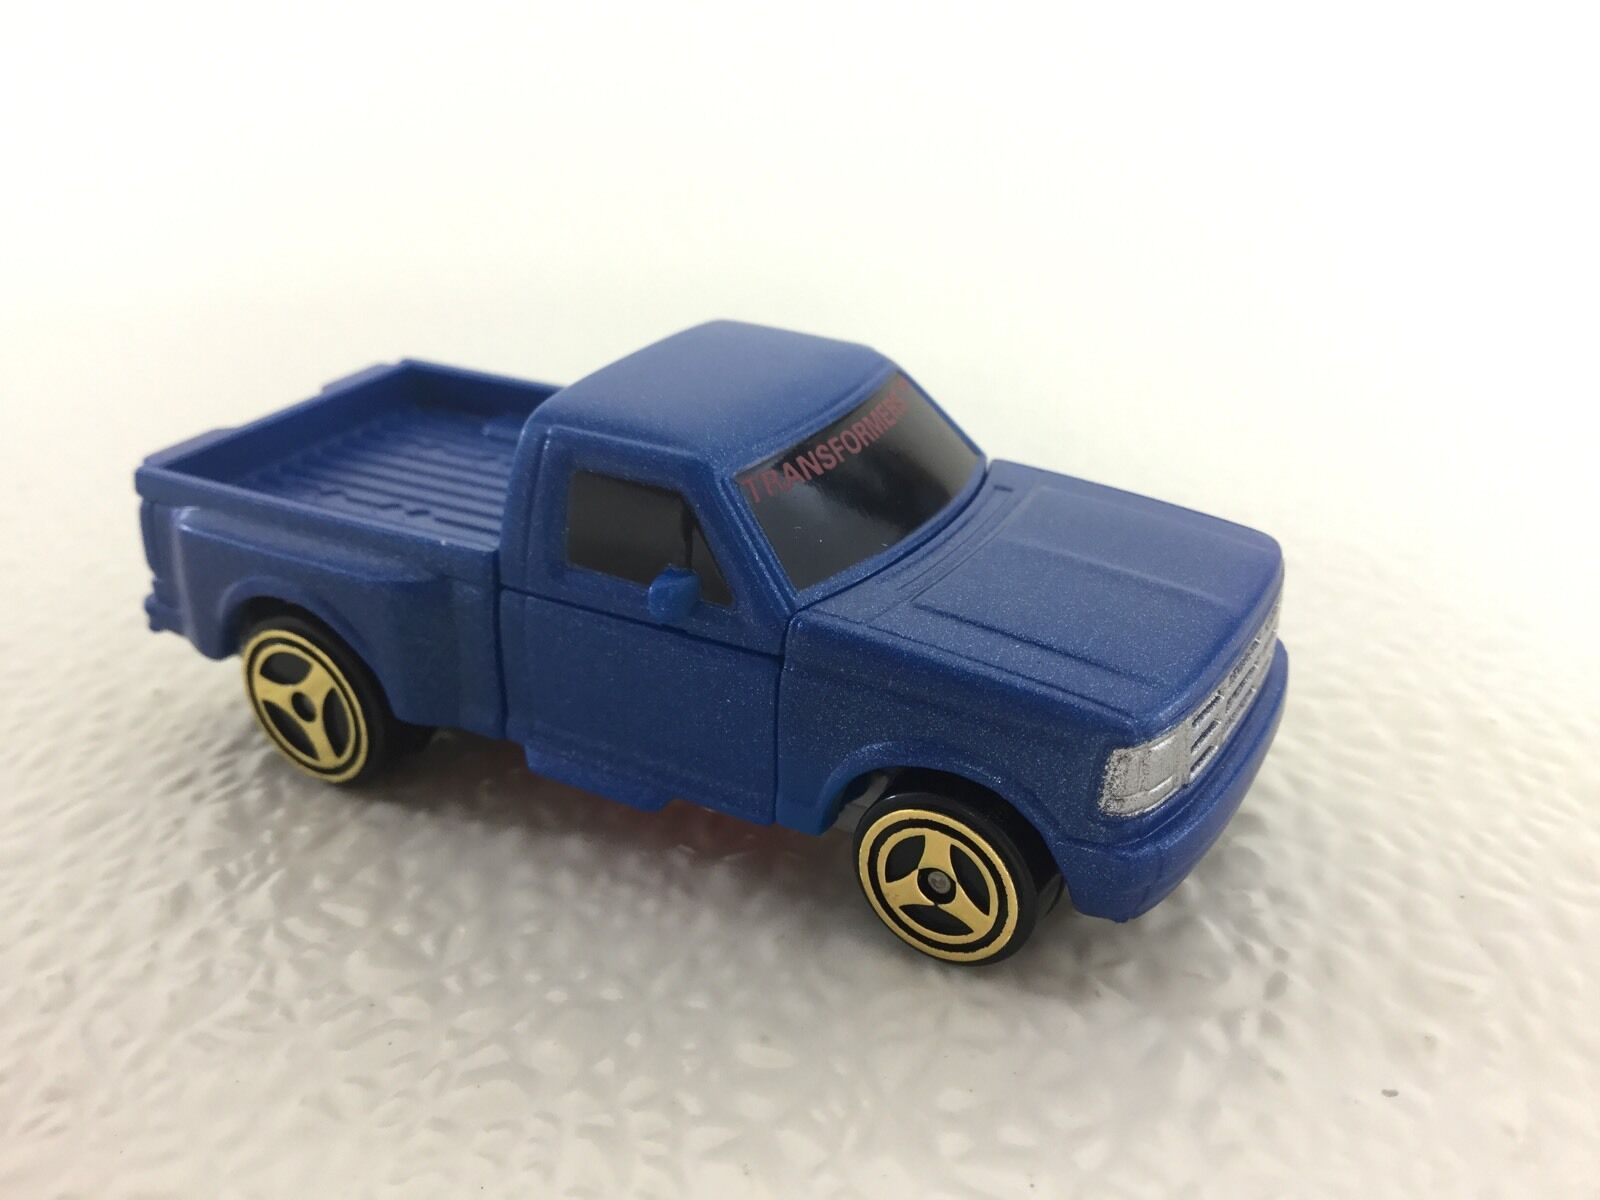 PROTOTYPE PAINTED Transformers Generation 2 GoBots MOTORMOUTH